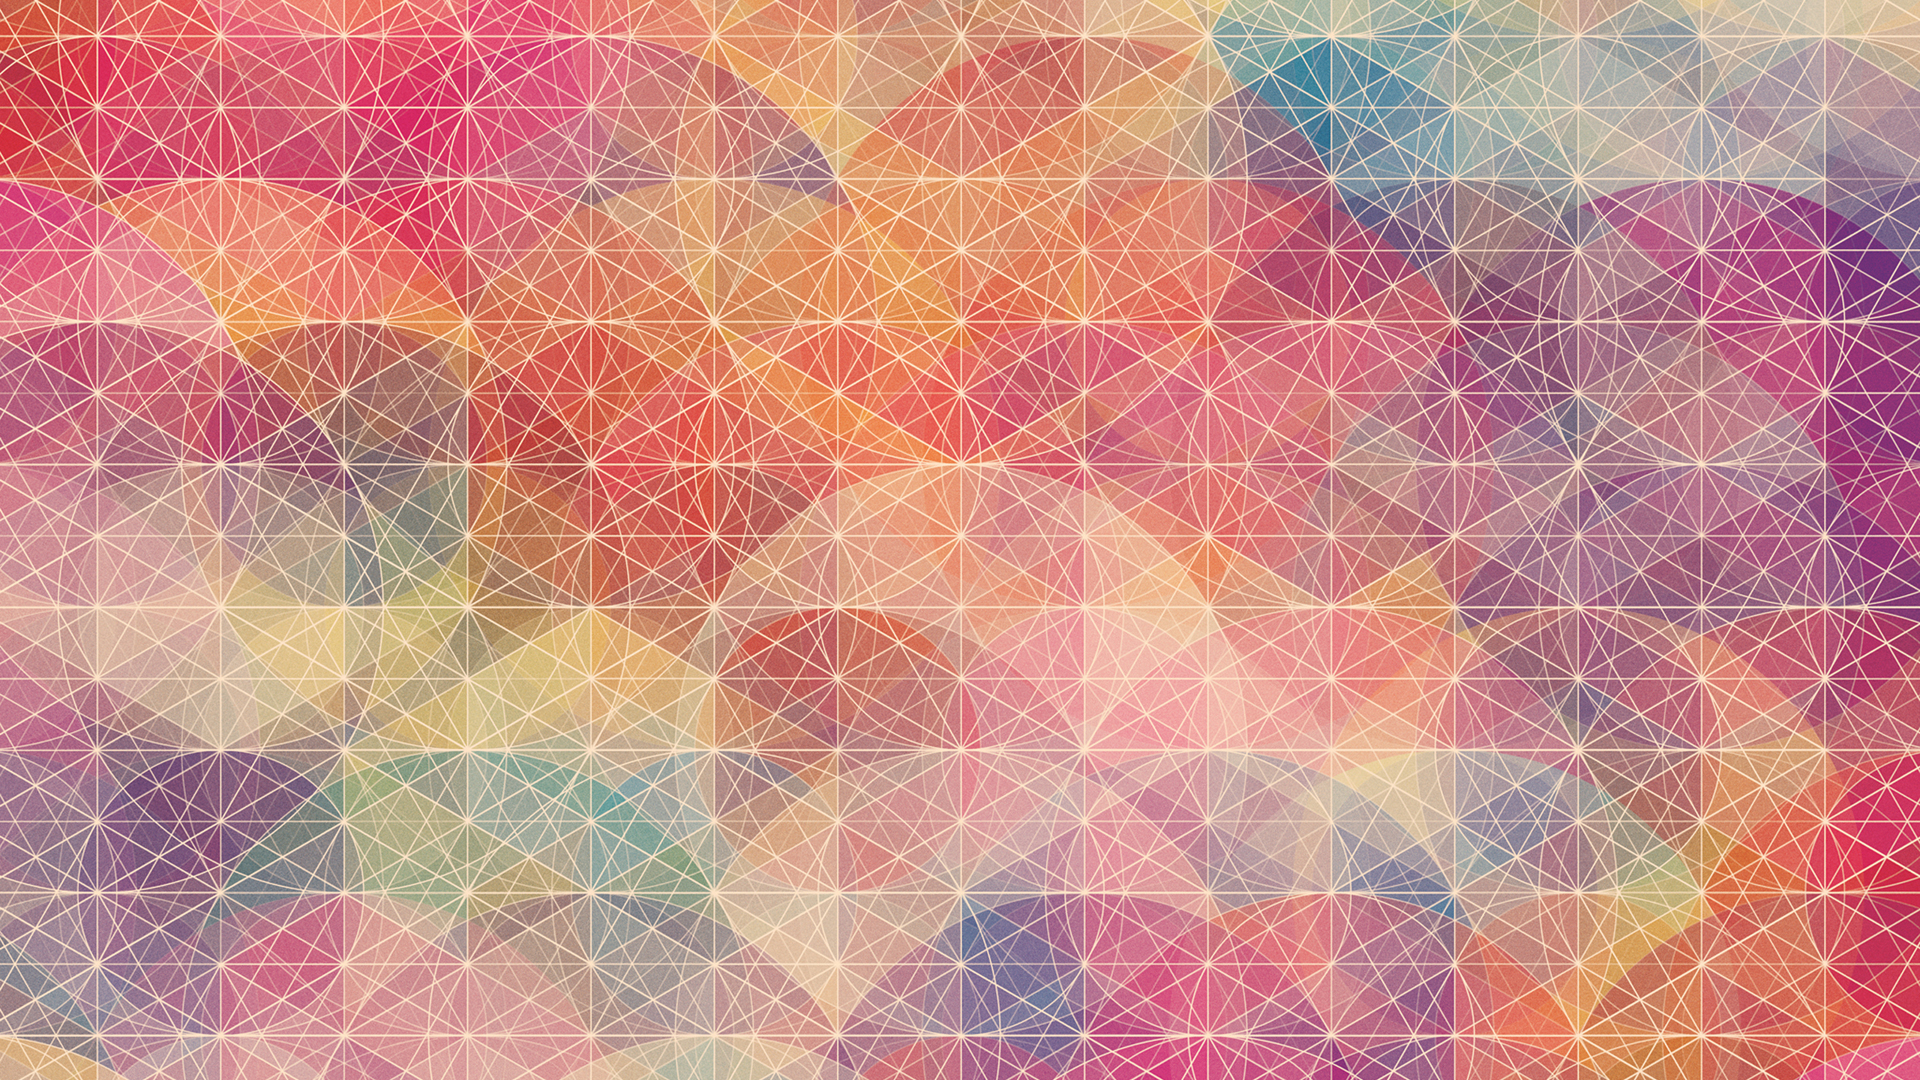 http://4.bp.blogspot.com/-Rl2sq22cJFY/T6gYgBx6h5I/AAAAAAAARds/MUKD4977Dtg/s1920/CUBEN-Space-Io-abstract-1920x1080.jpg